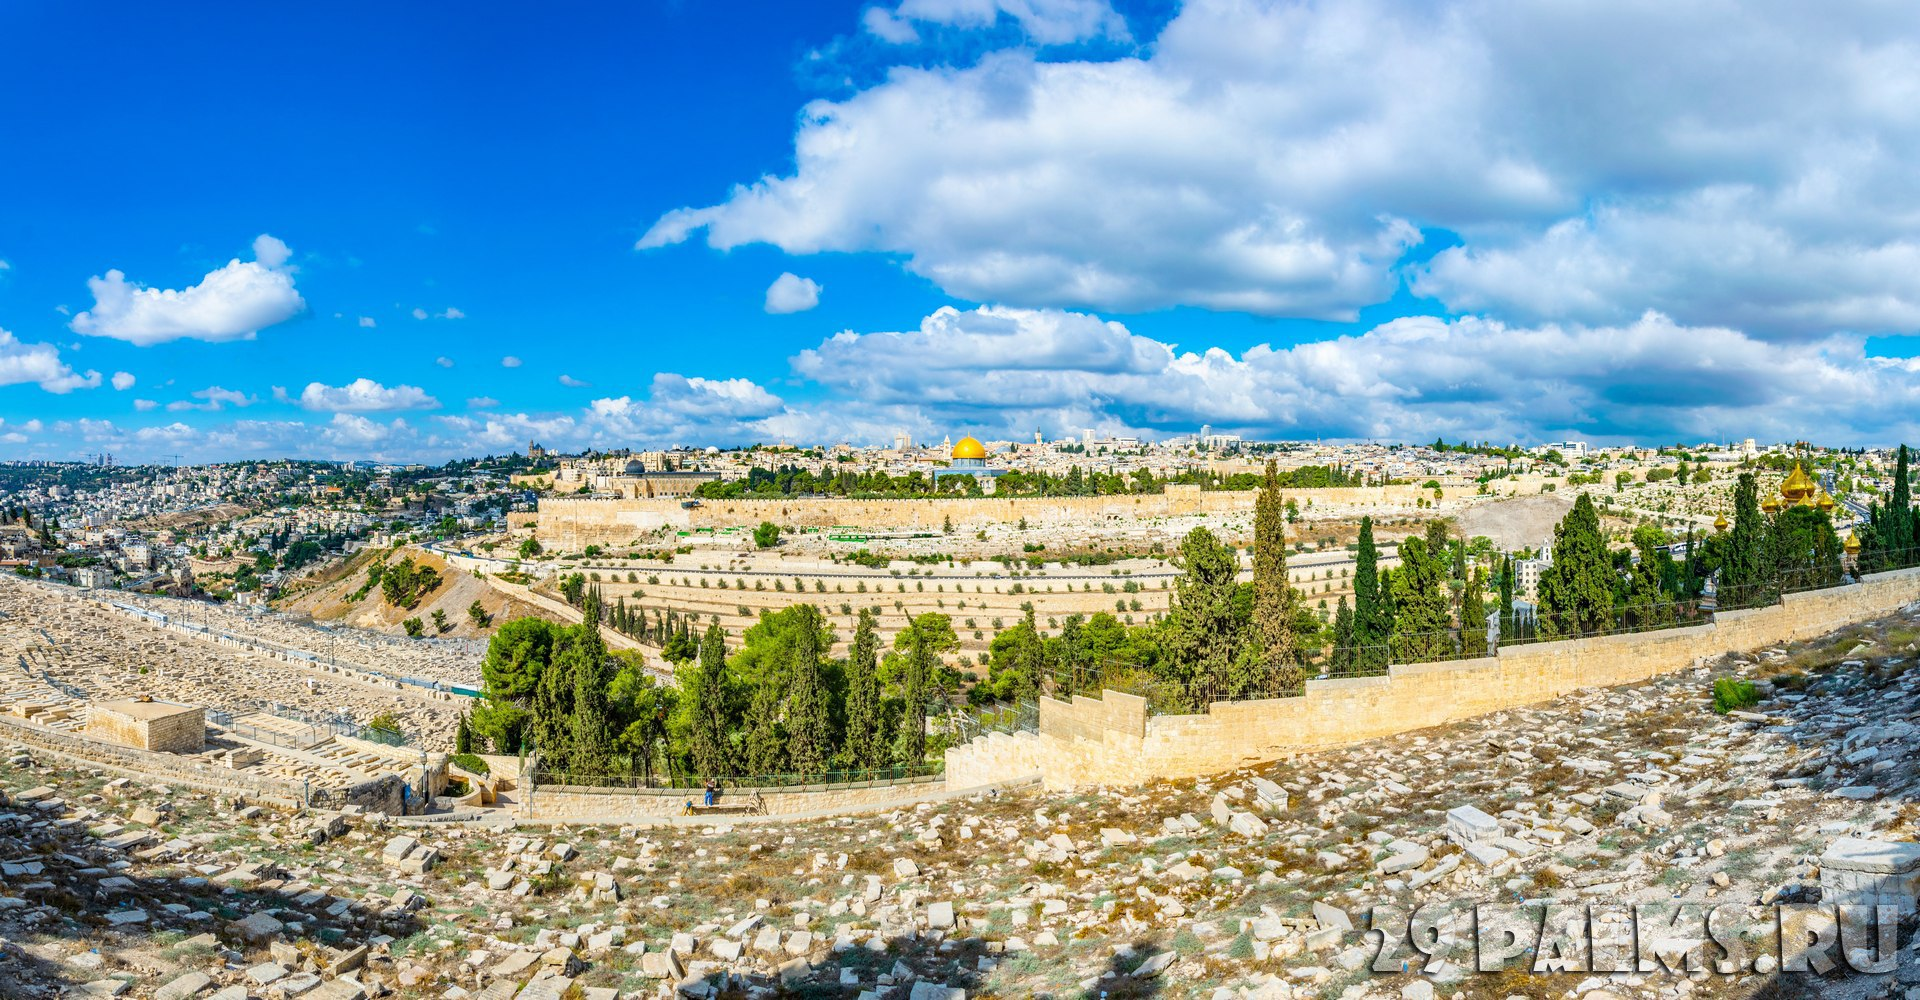 Клуб путешествий Павла Аксенова. Израиль. Панорама Иерусалима. Jerusalem viewed from the mount of olives, Israel. Фото Dudlajzov - Depositphotos